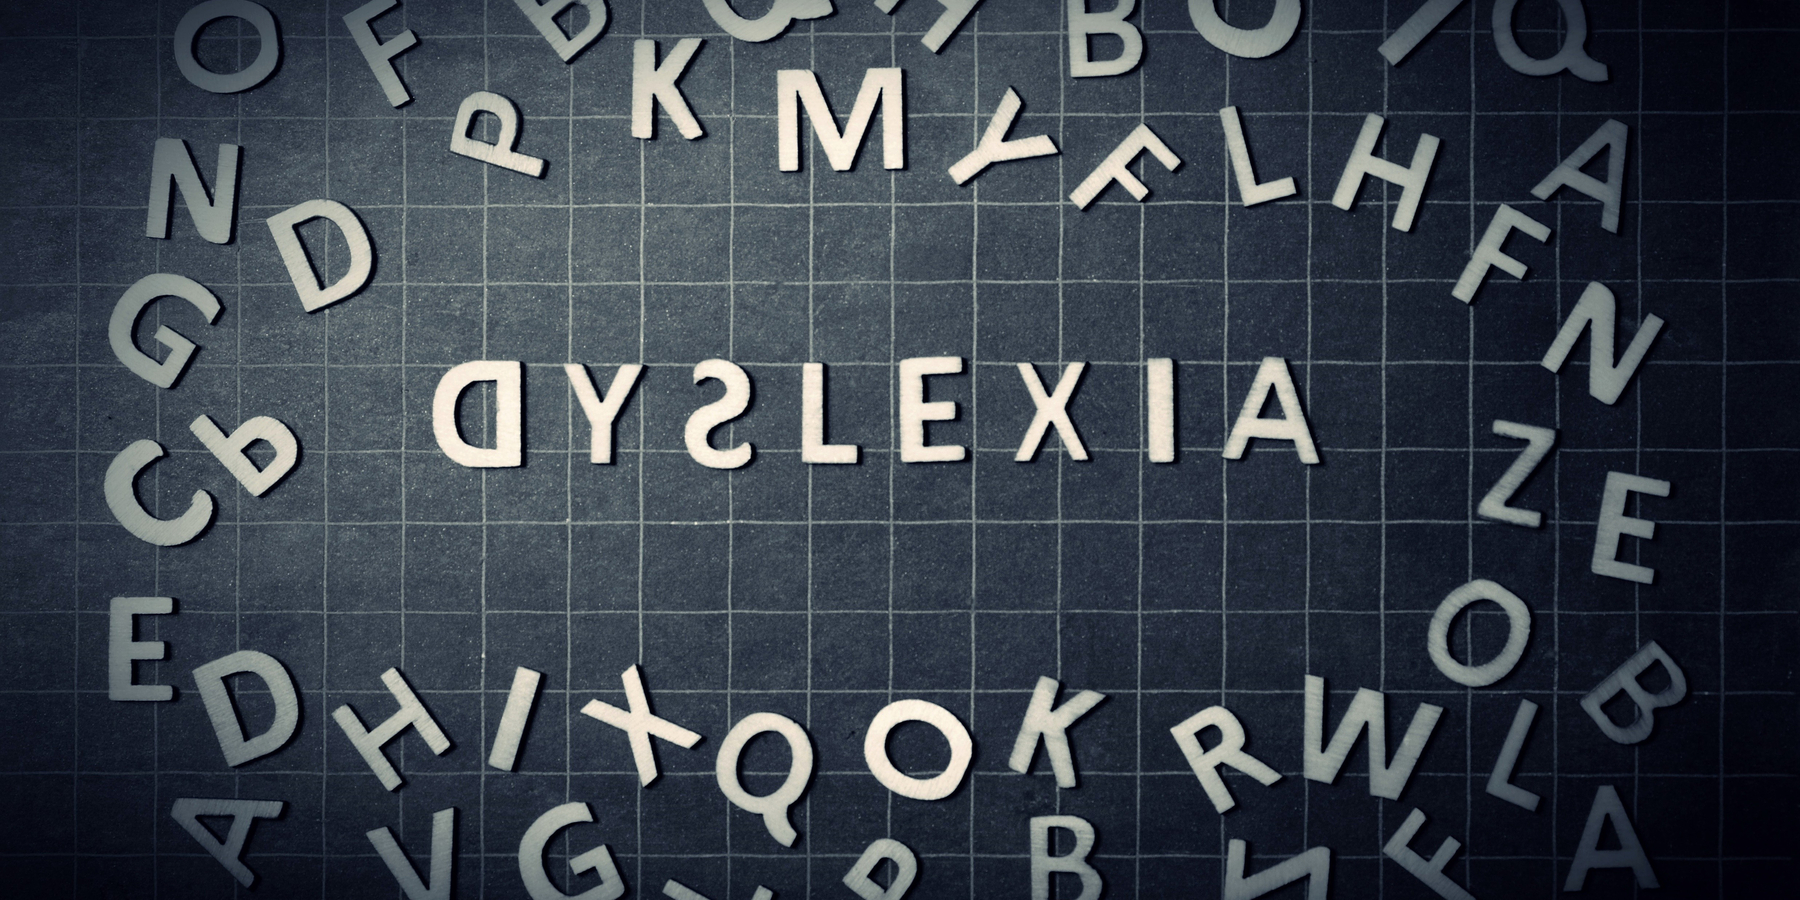 How Should Medical Schools Respond to Students with Dyslexia